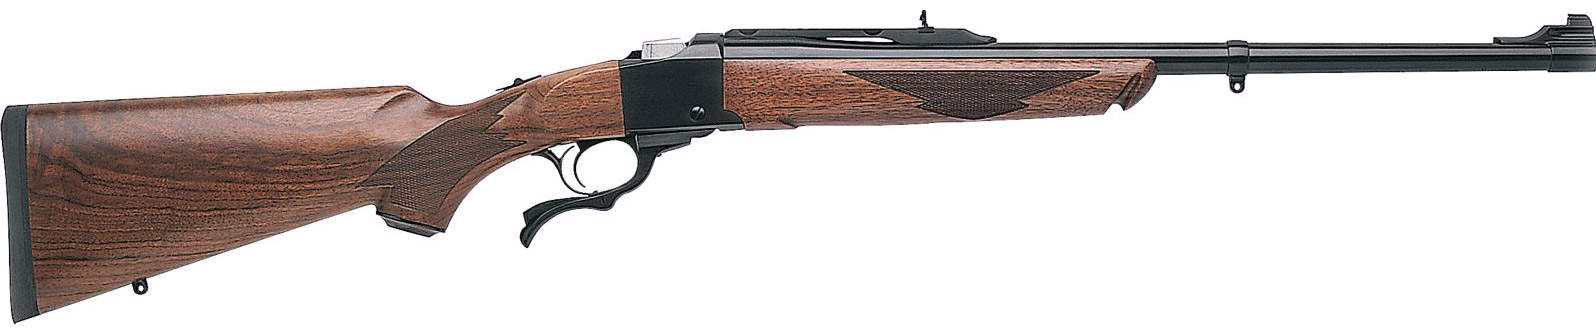 Ruger® No. 1 Centerfire Rifle